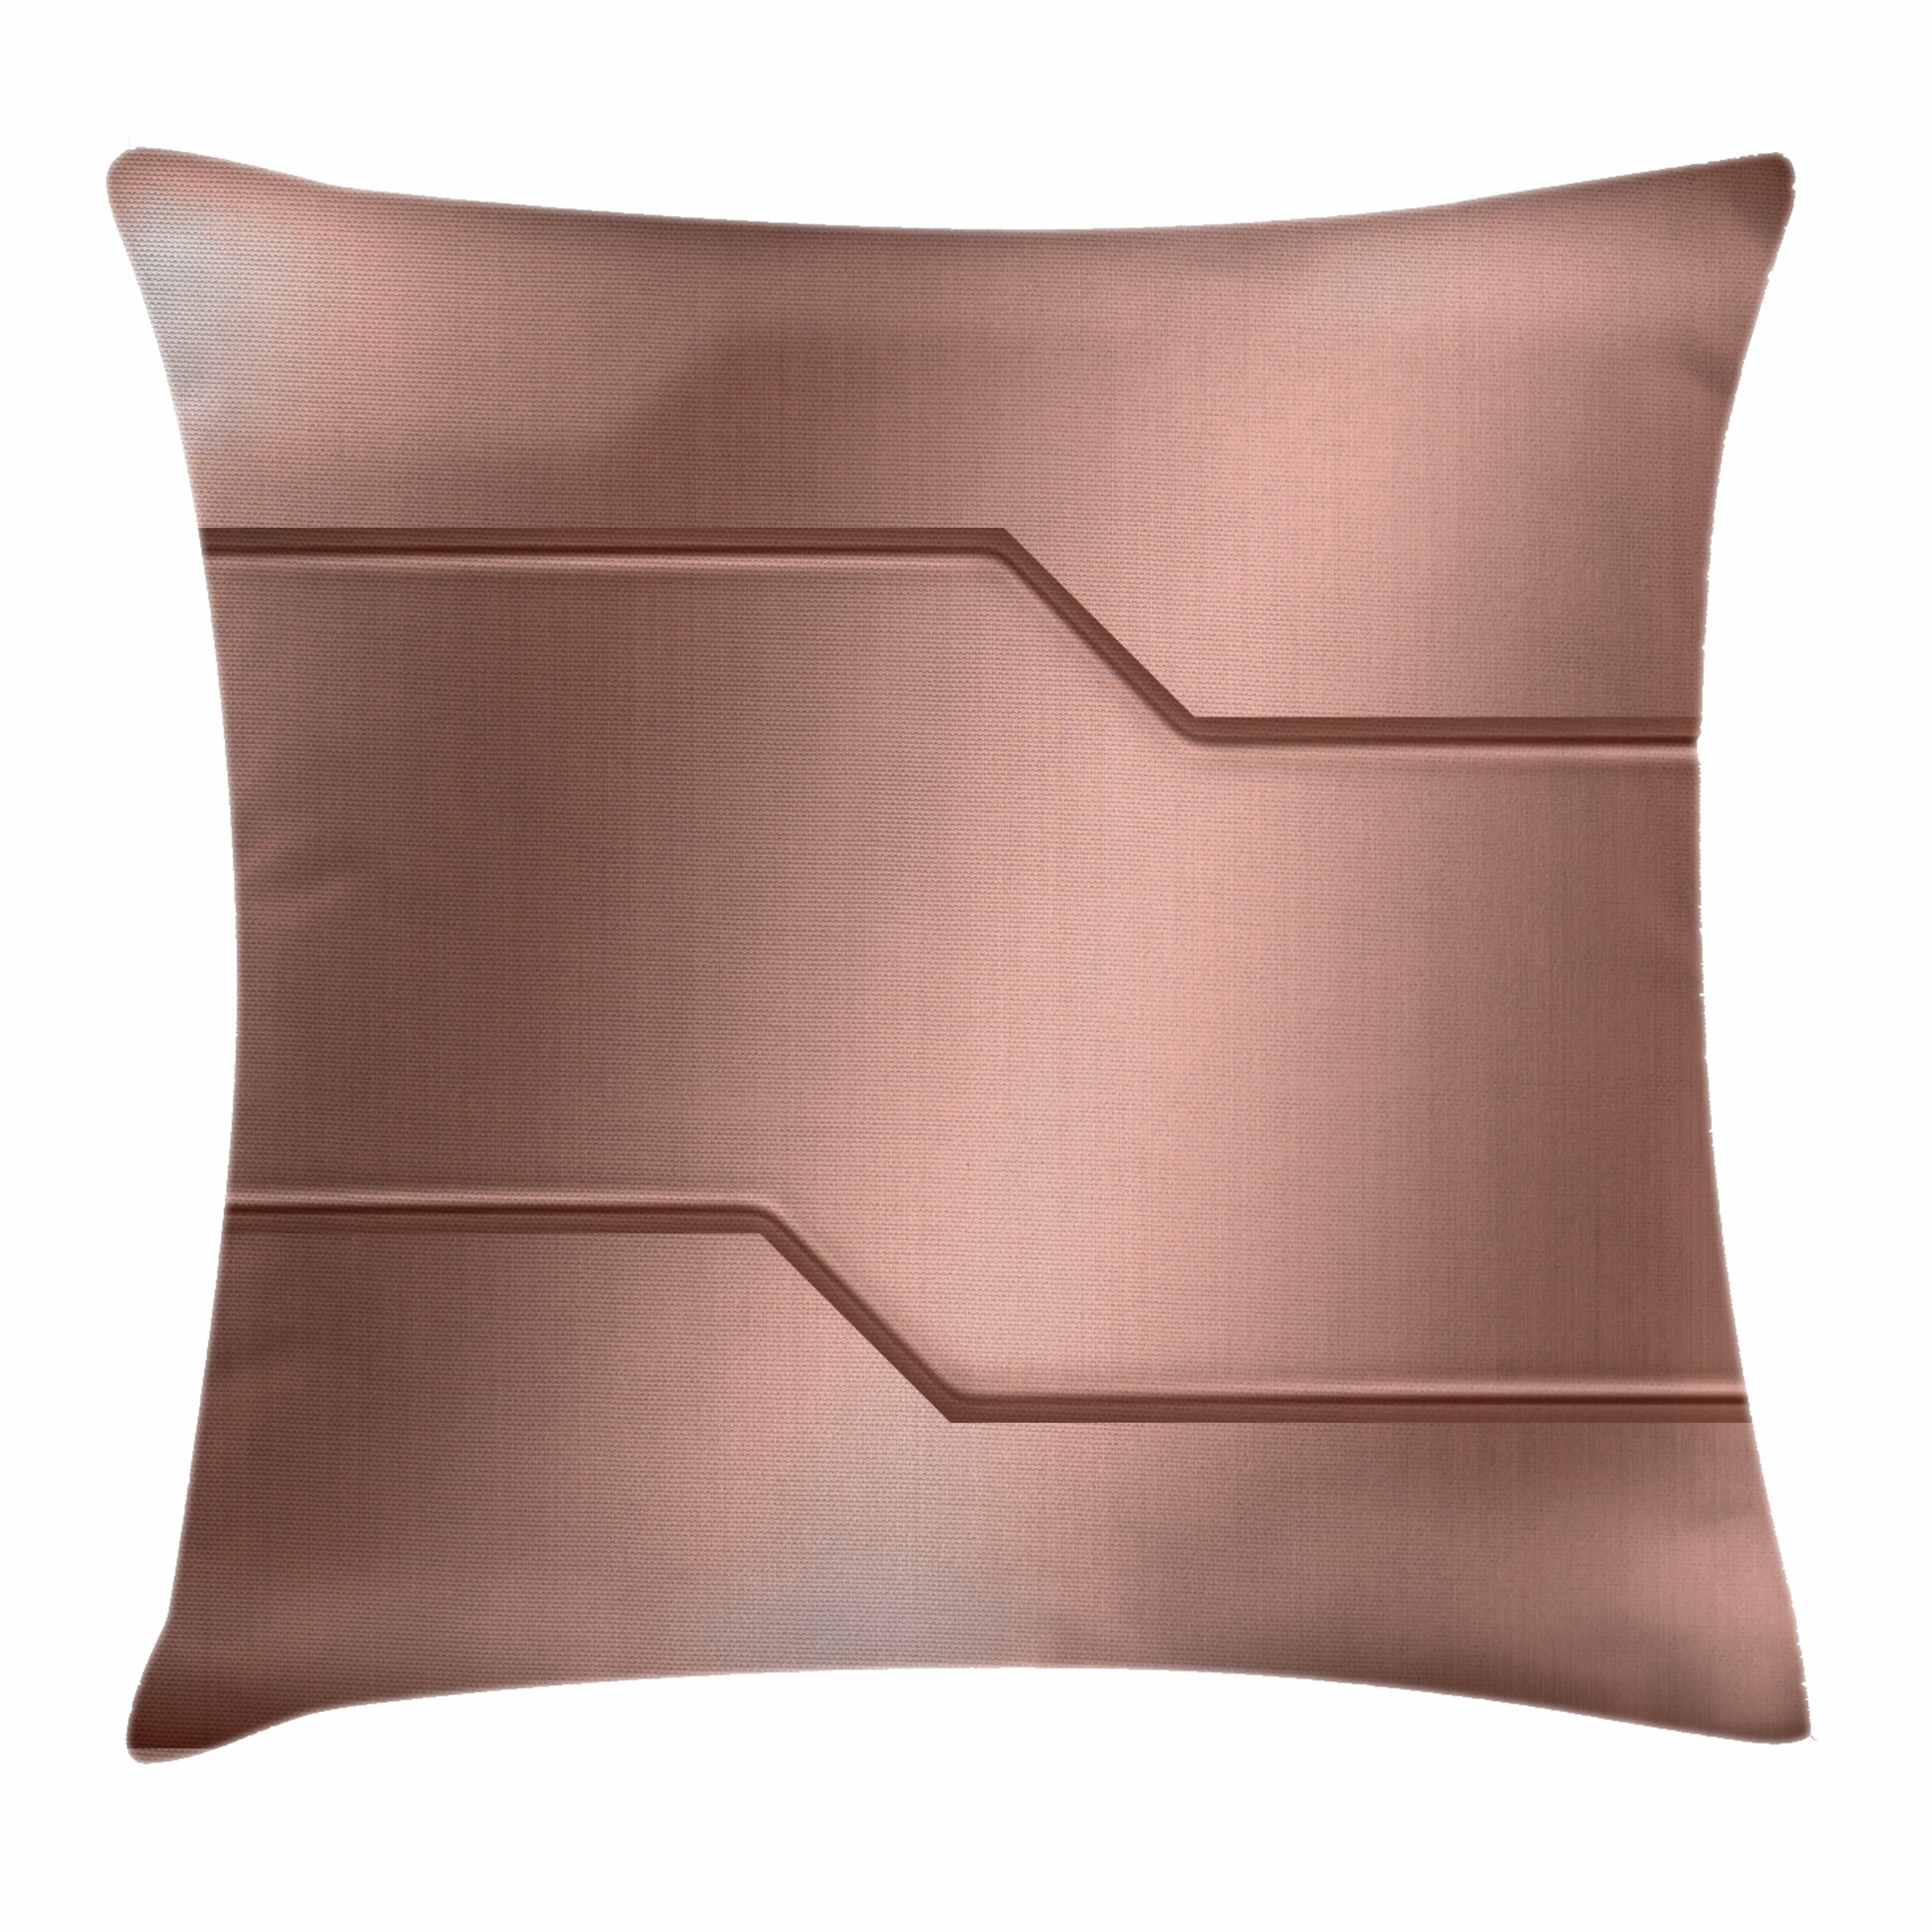 Copper Decor Throw Pillow Cushion Cover, Realistic Metallic Seem Plate Bar Image Technology Industry Steel Surface Print, Decorative Square Accent Pillow Case, 18 X 18 Inches, Rose Gold, by Ambesonne